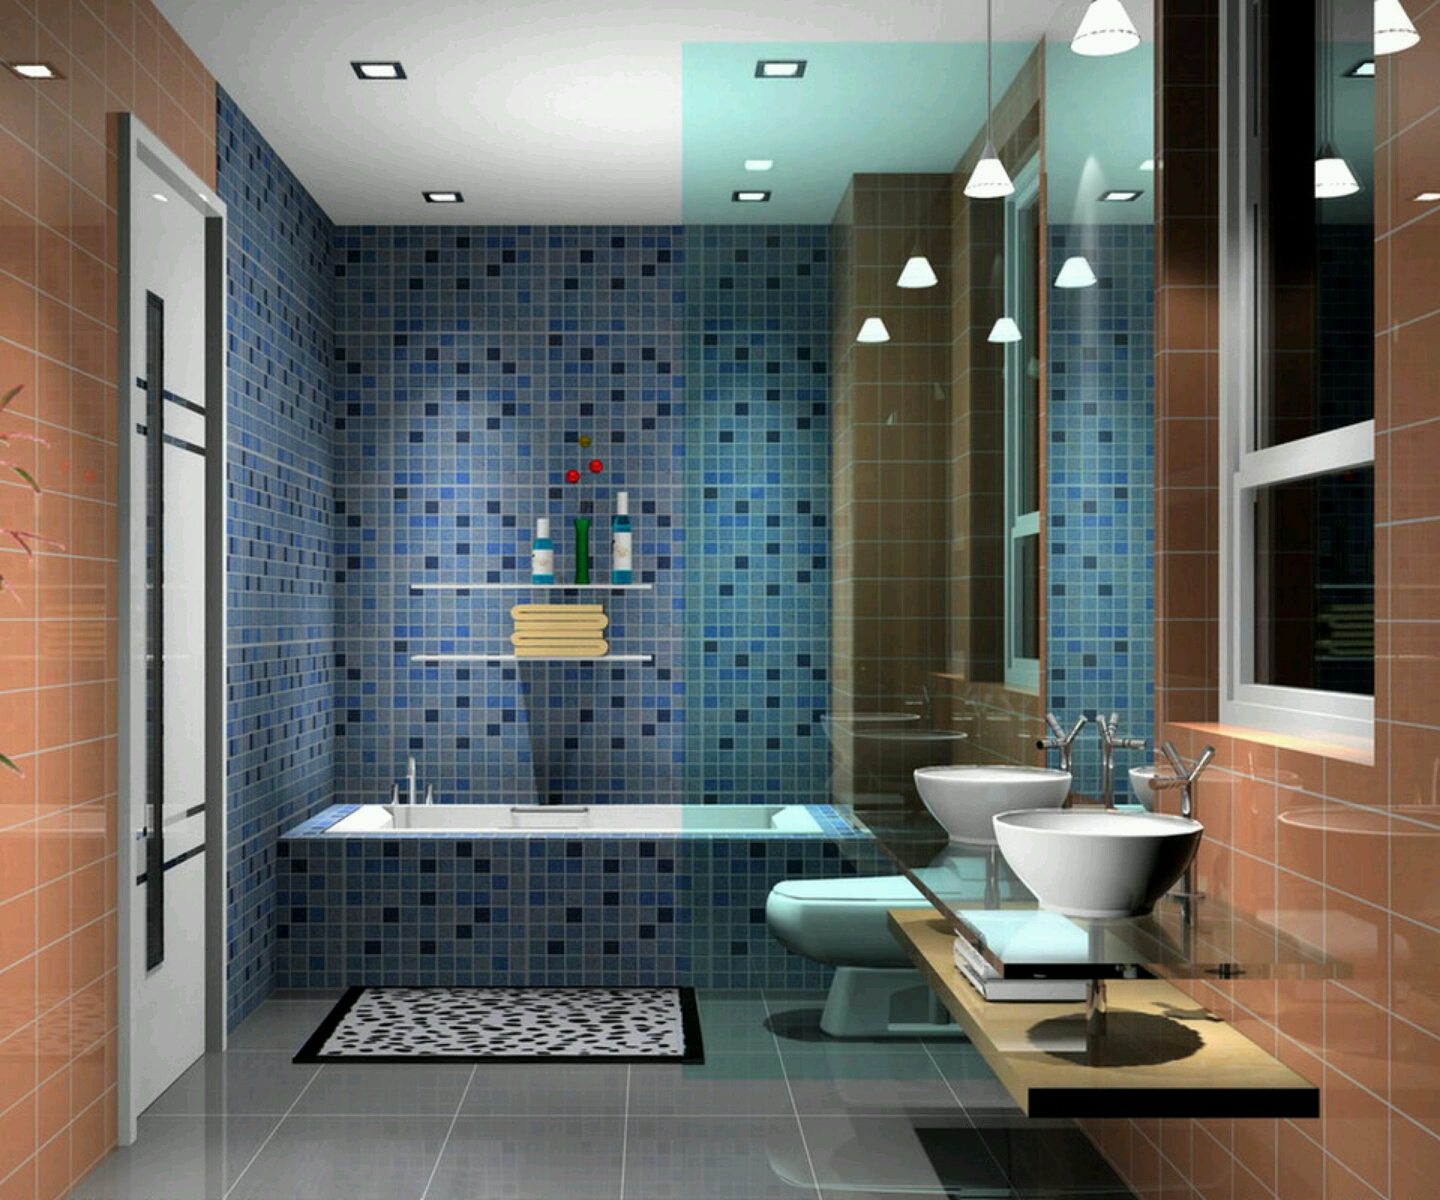 Modern bathrooms best designs ideas modern home designs for Best home design images